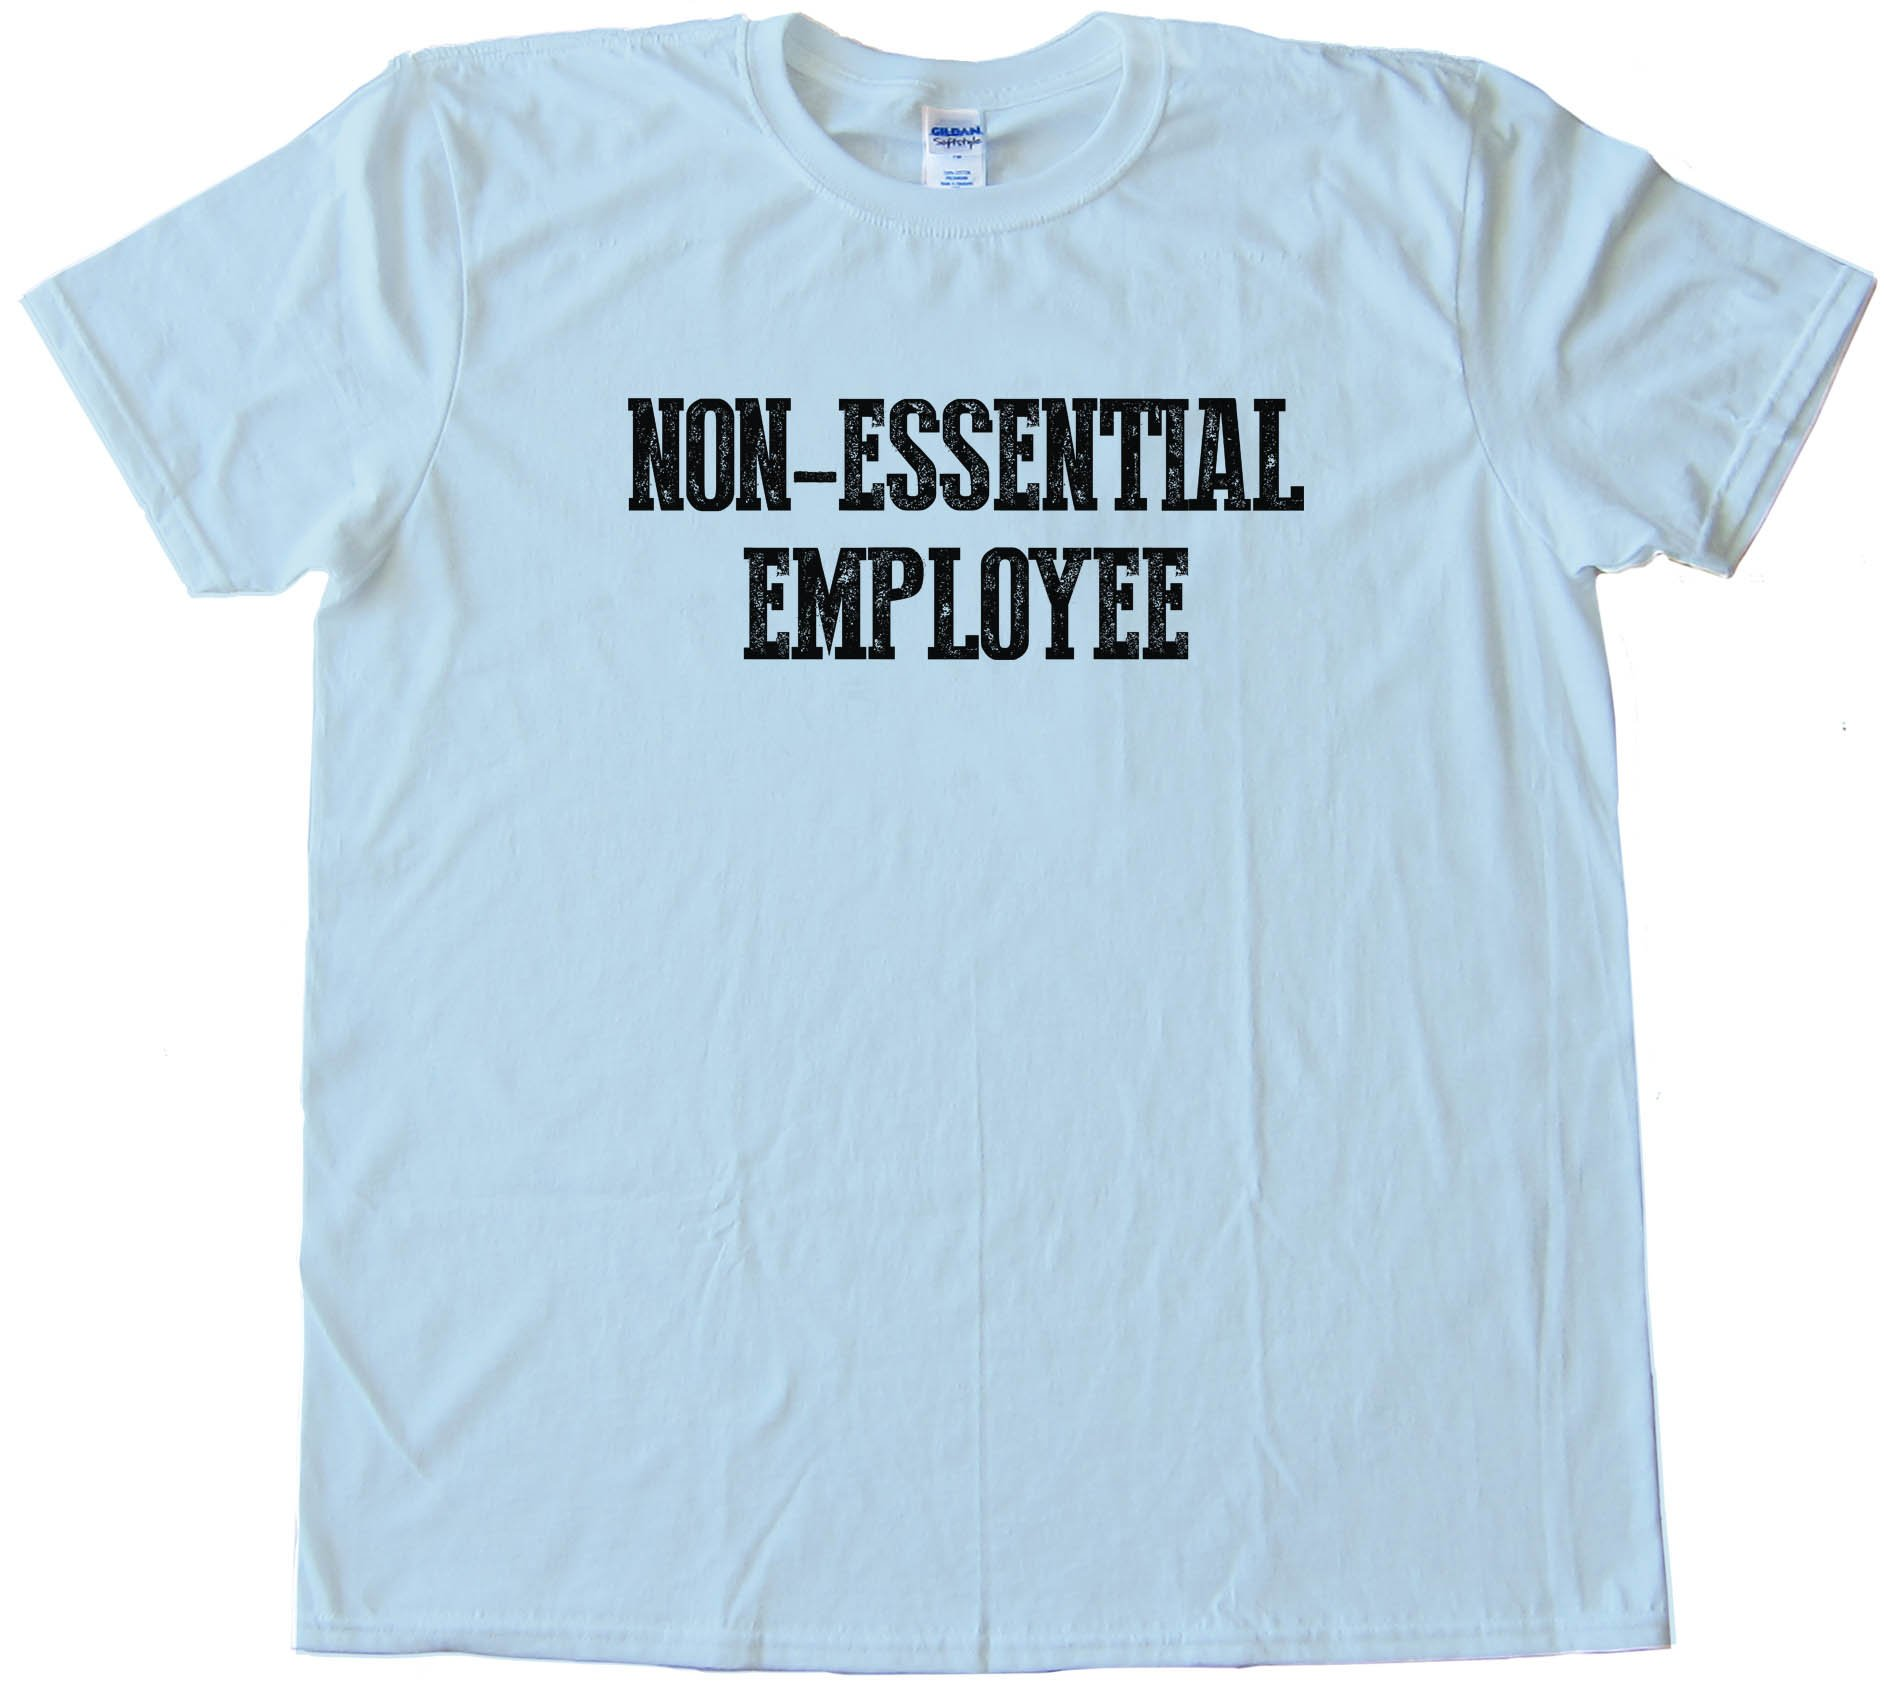 Non Essential Employee - Tee Shirt